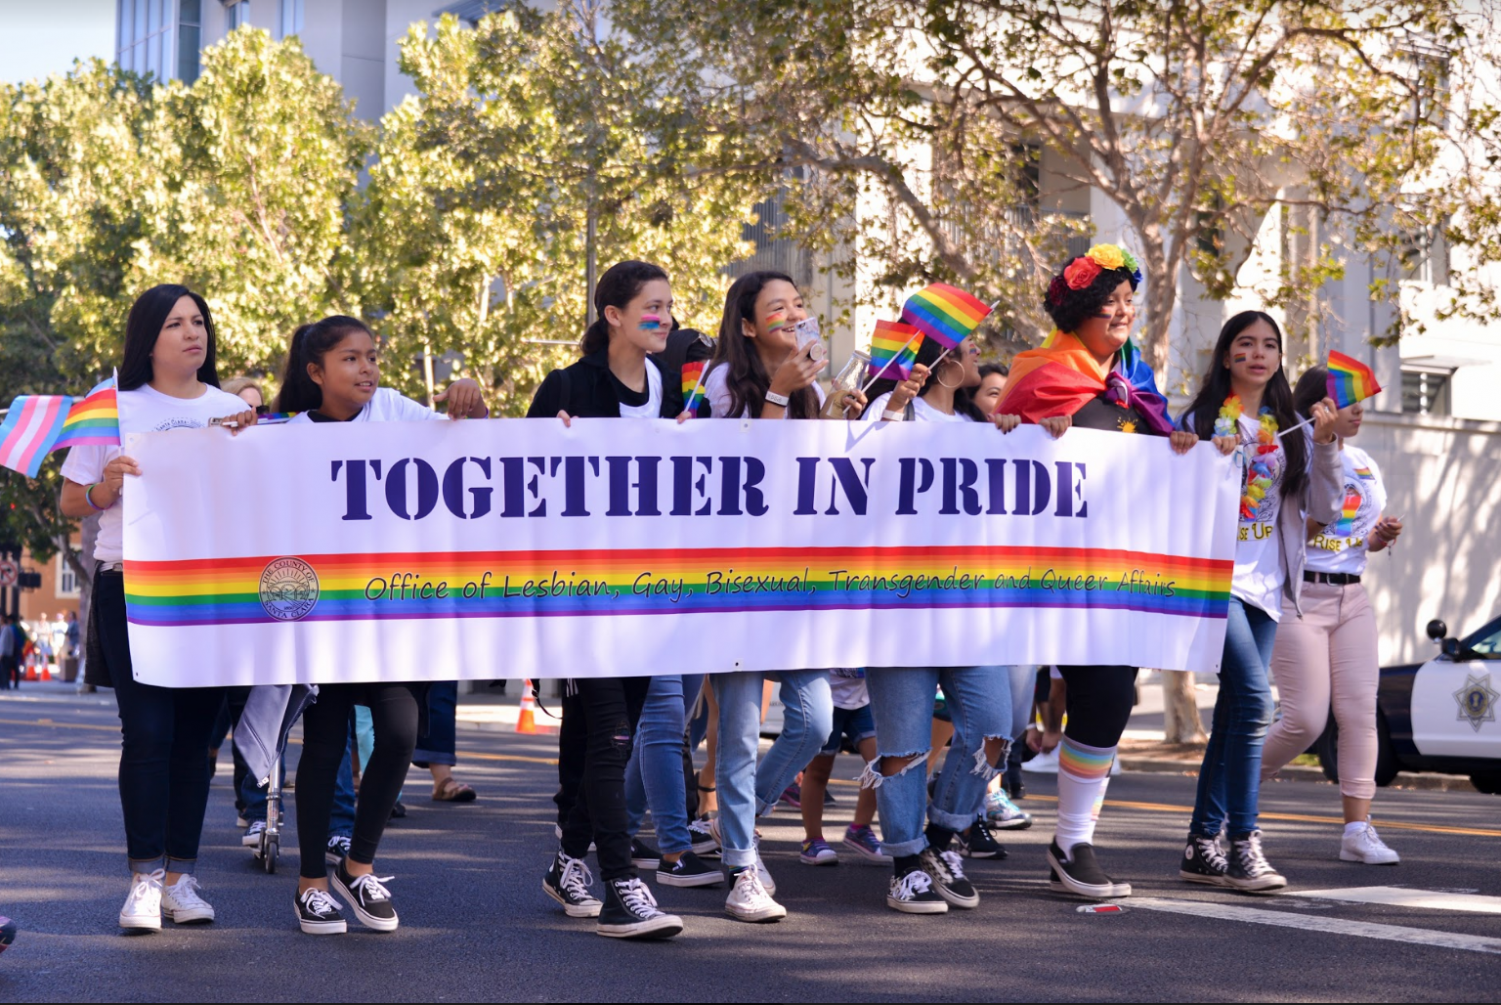 Student marchers representing the Office of LBTQ+ rights carry a festive banner in honor of Pride.